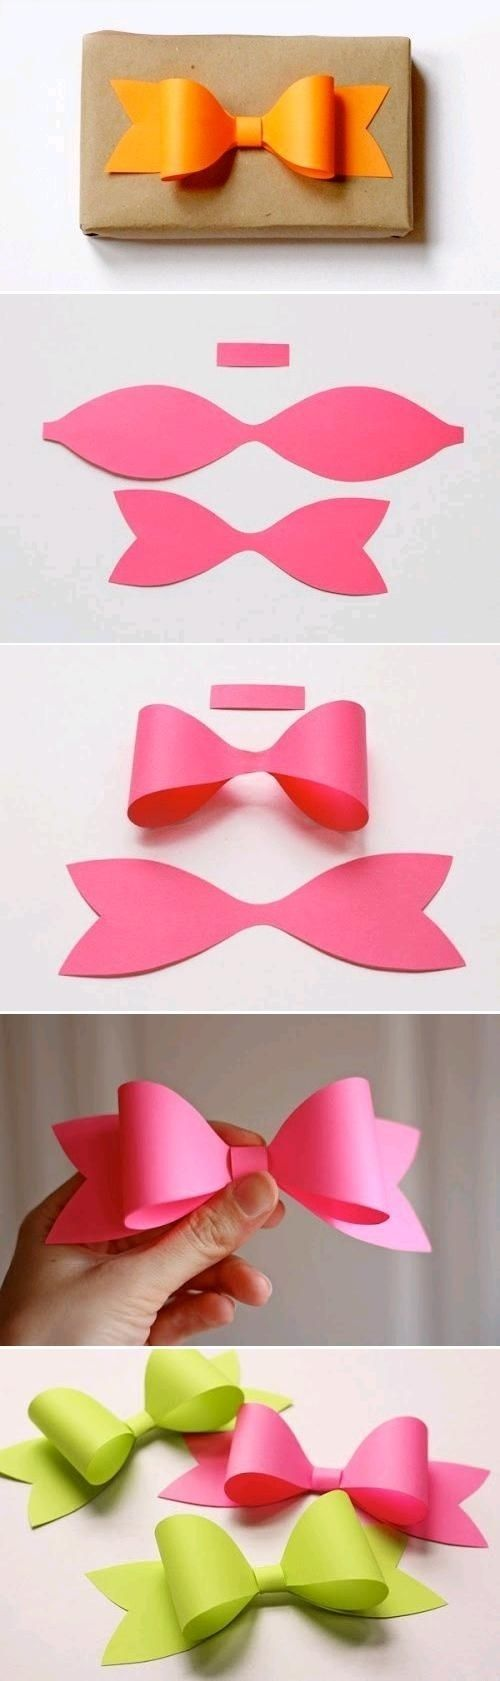 Gorgeous Christmas Bow Tie tutorials others origami  Presents Bow Tie  from the storeroom @ POTW